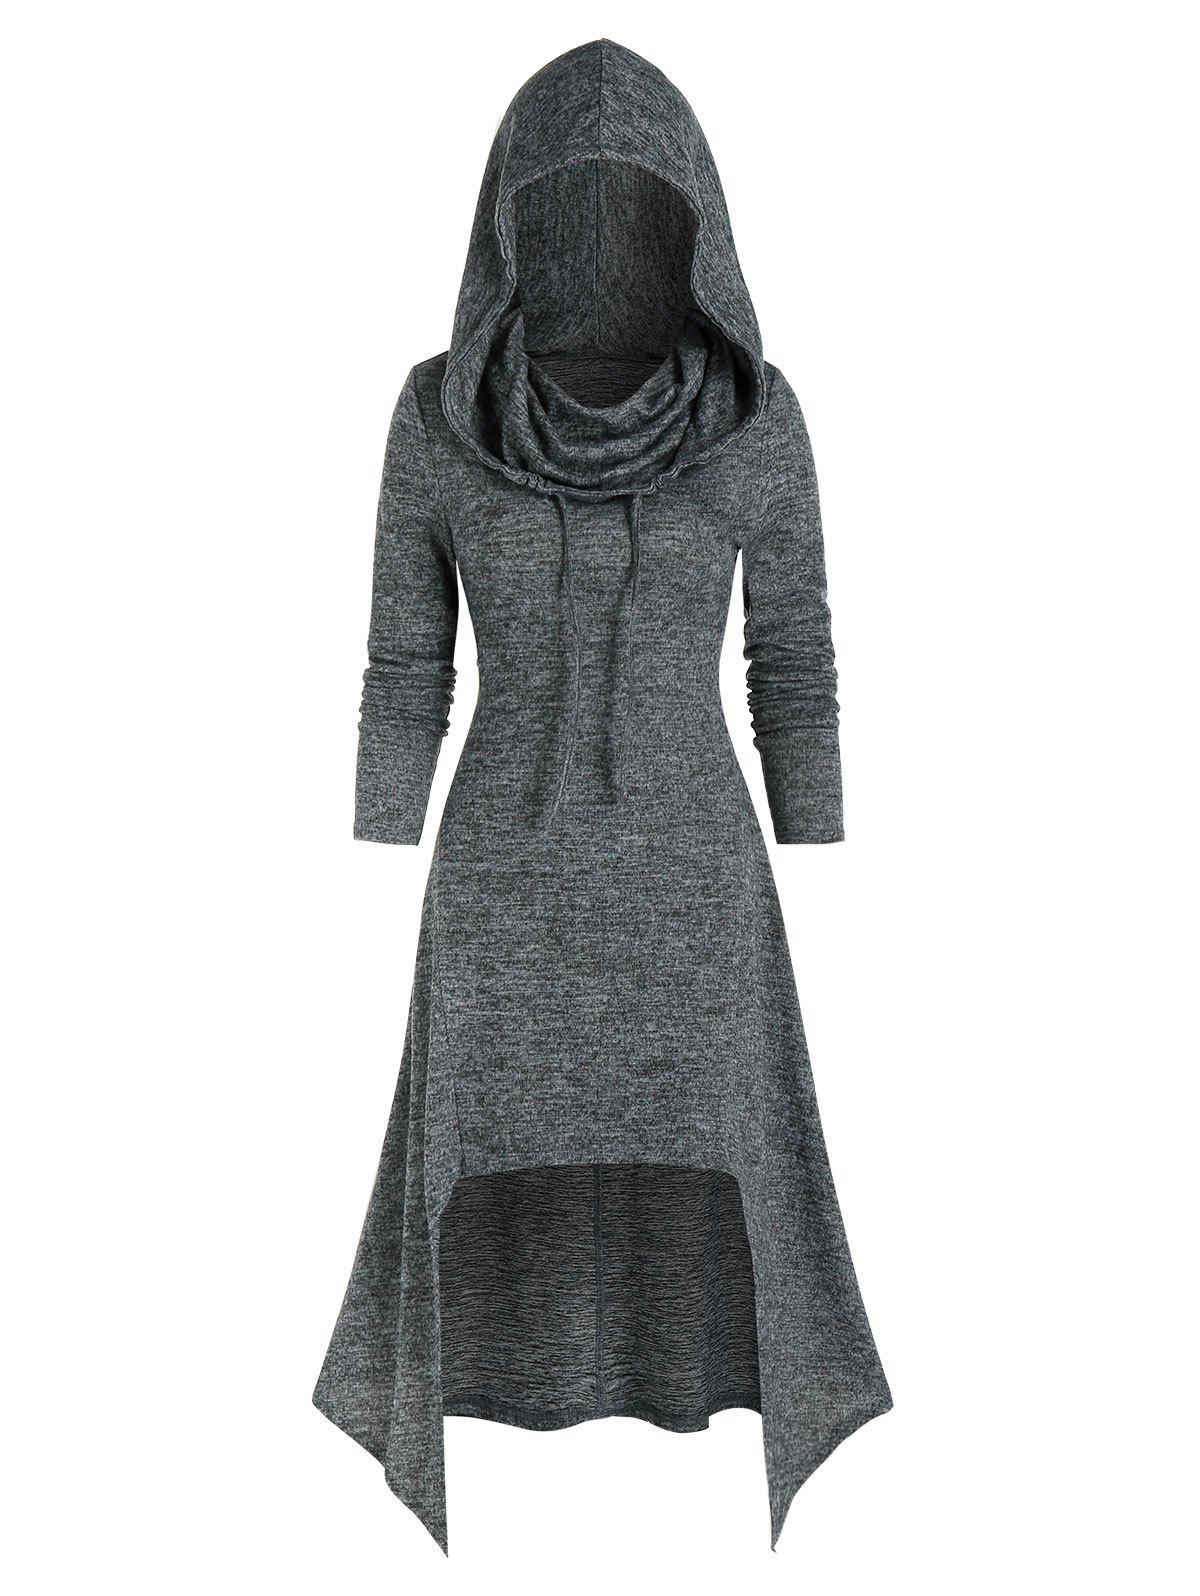 Hooded Lace Up High Low Knitted Midi Dress - GRAY 2XL